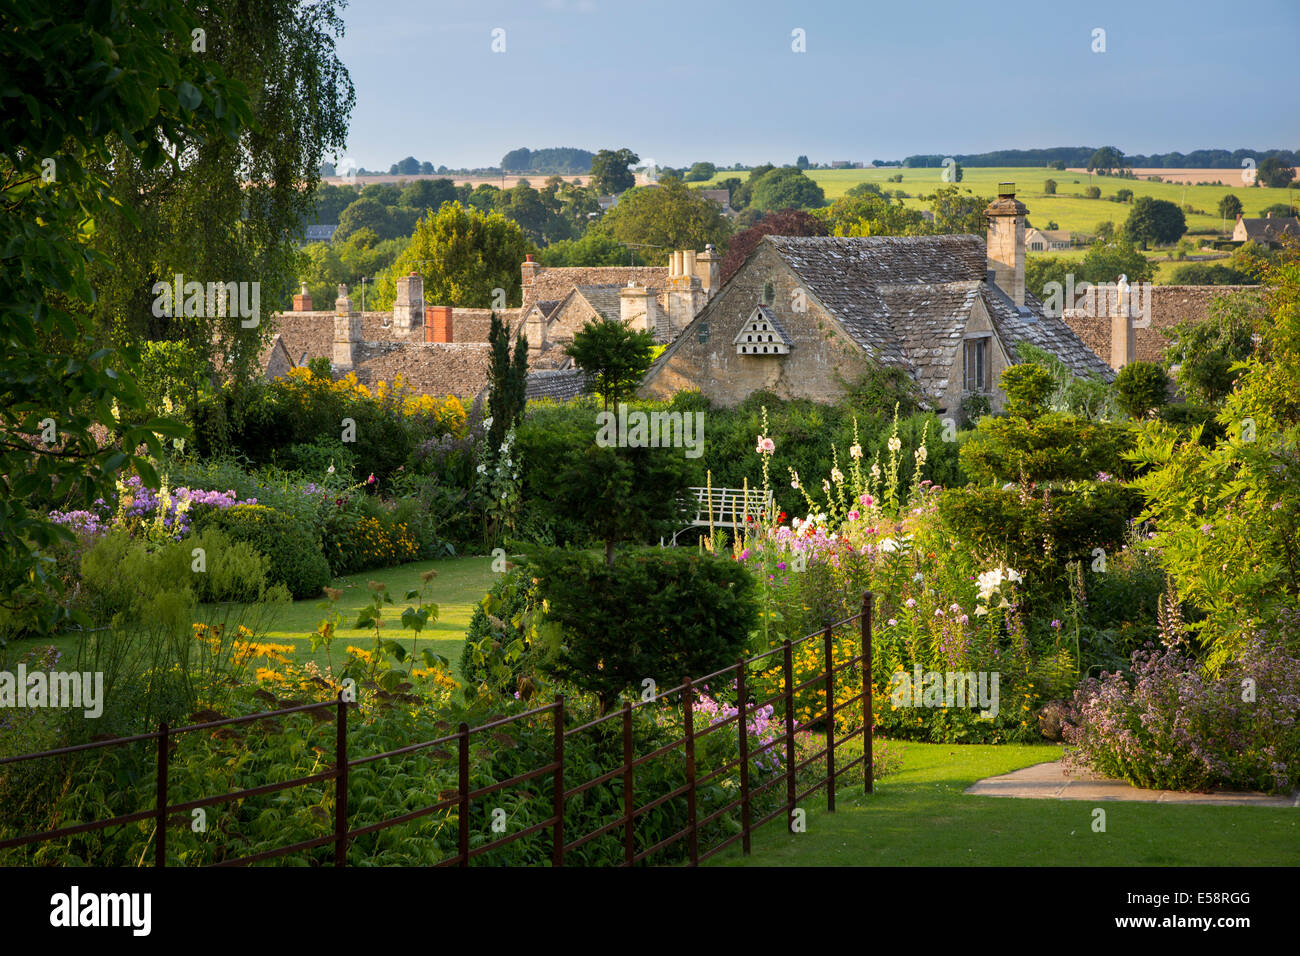 Garden above the rooftops of Burford, the Cotswolds, Oxfordshire, England - Stock Image